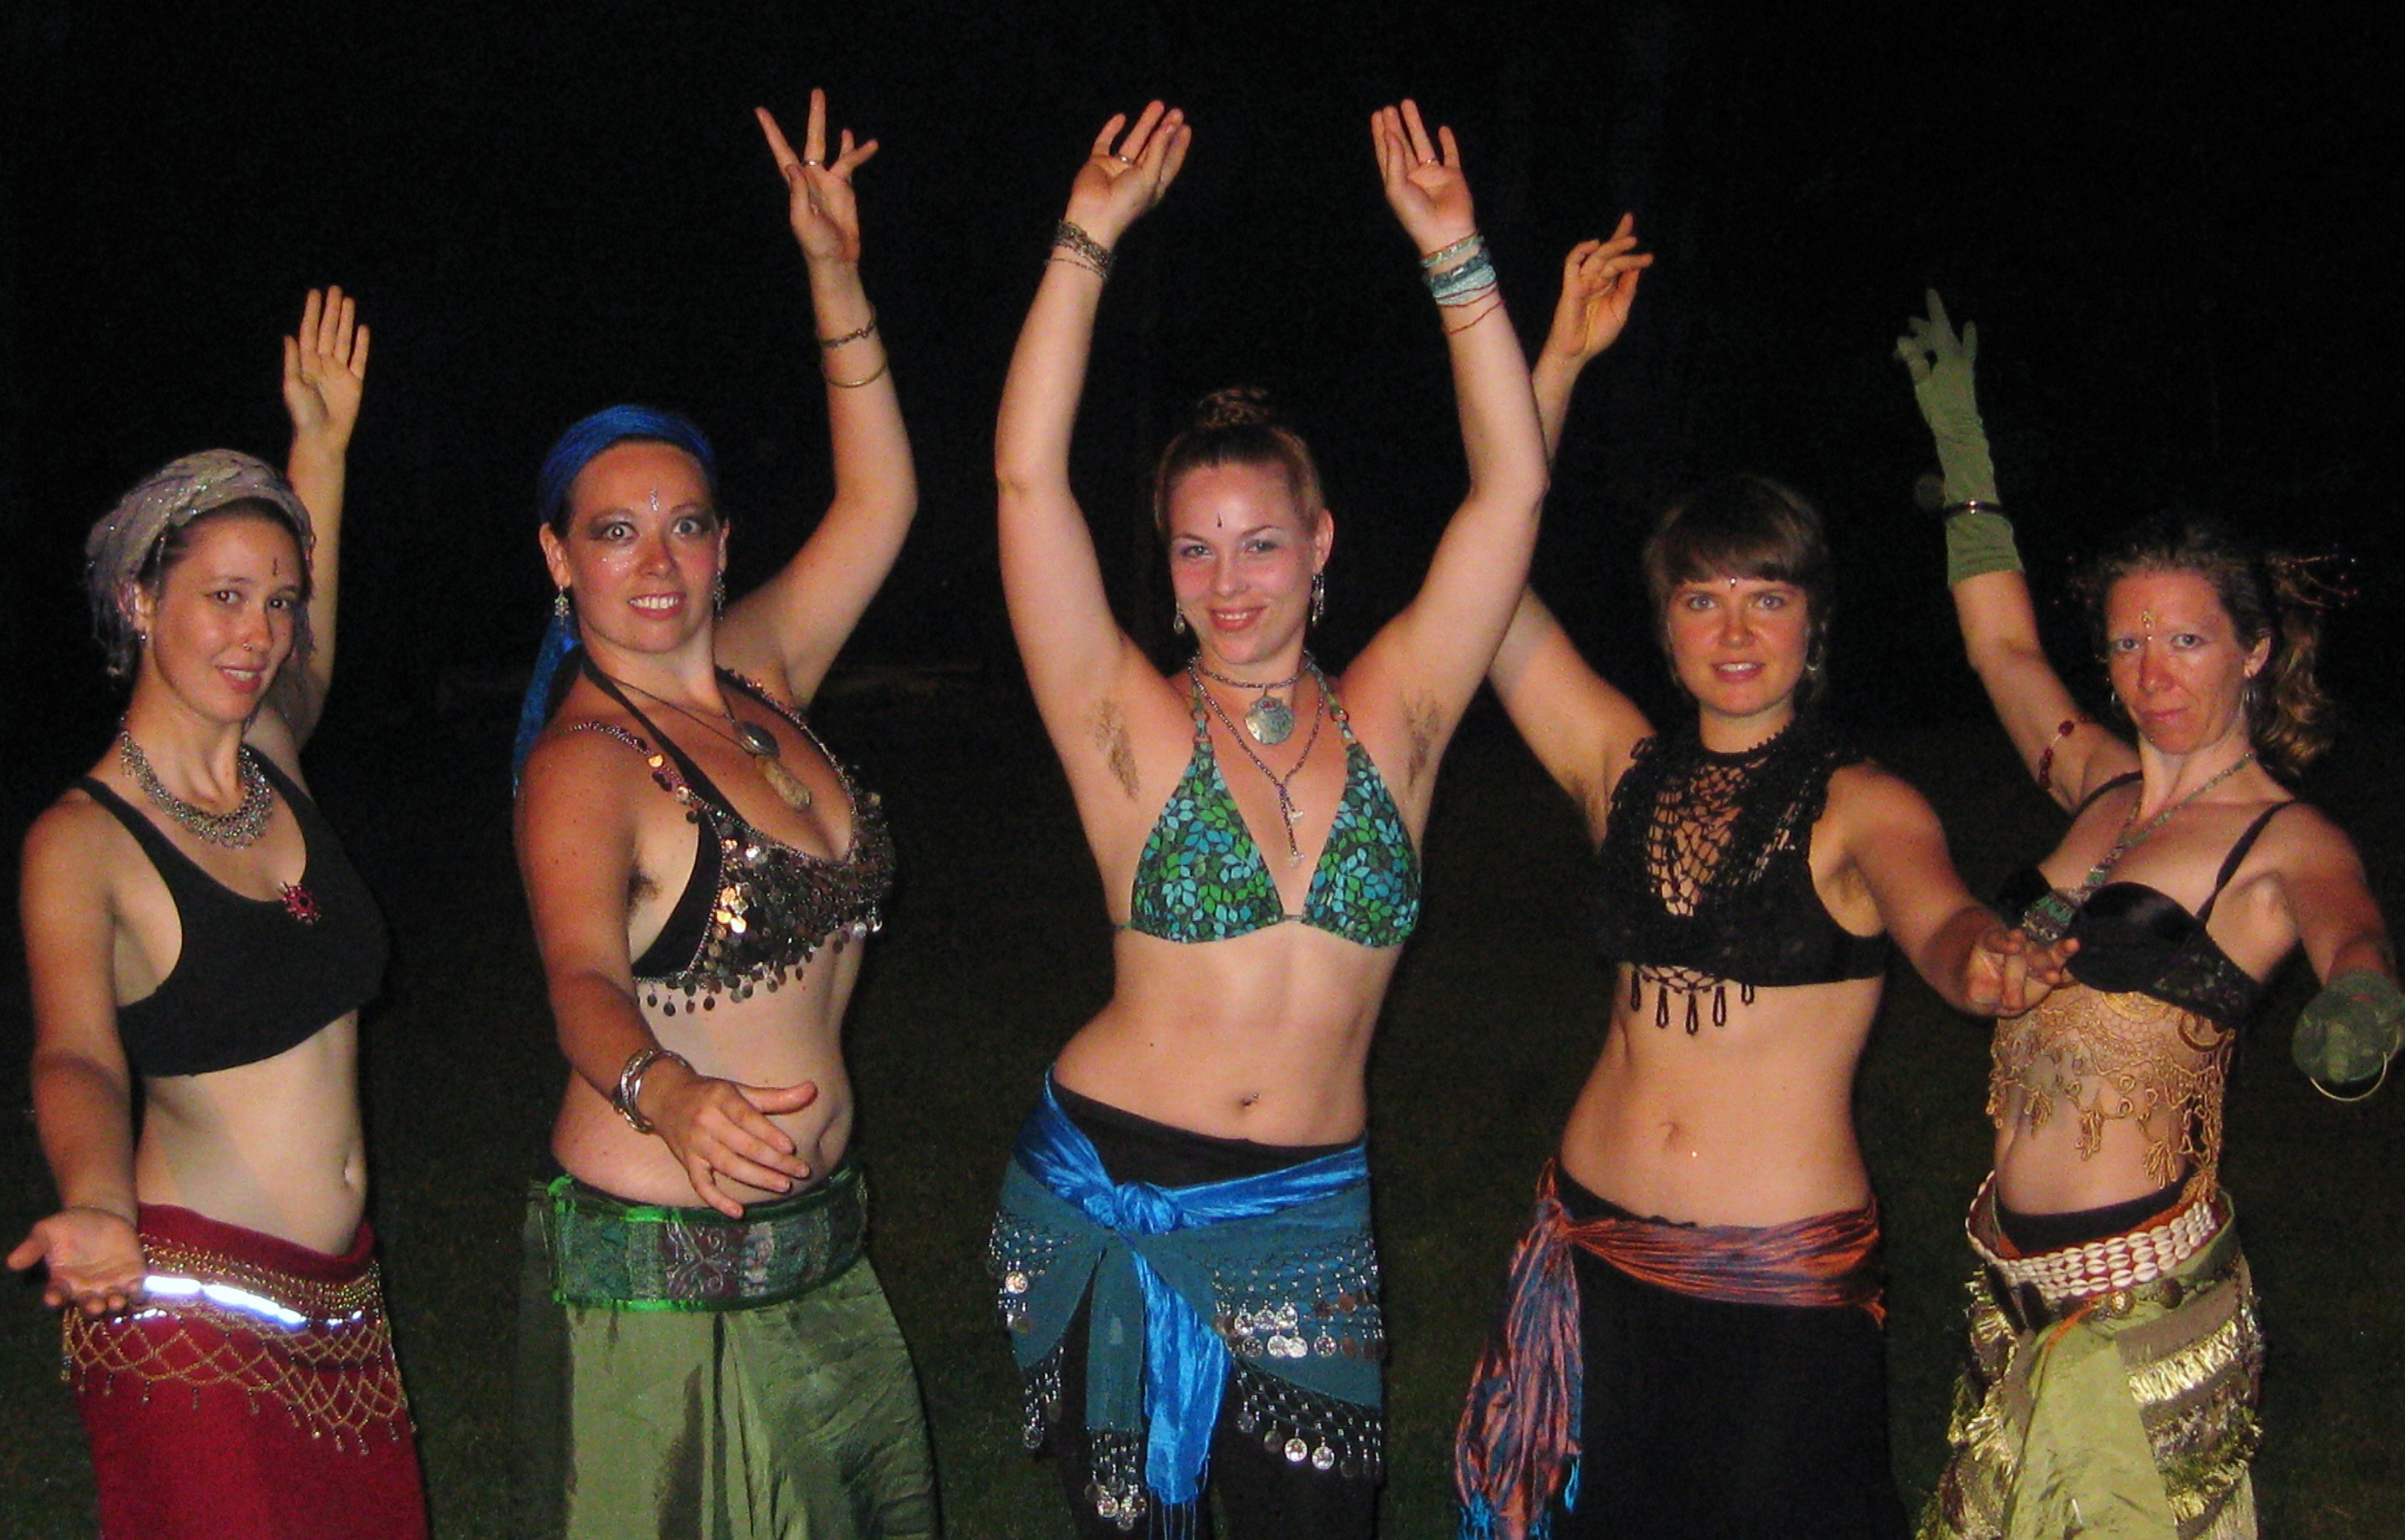 best of Private swinger parties ky ind blogs